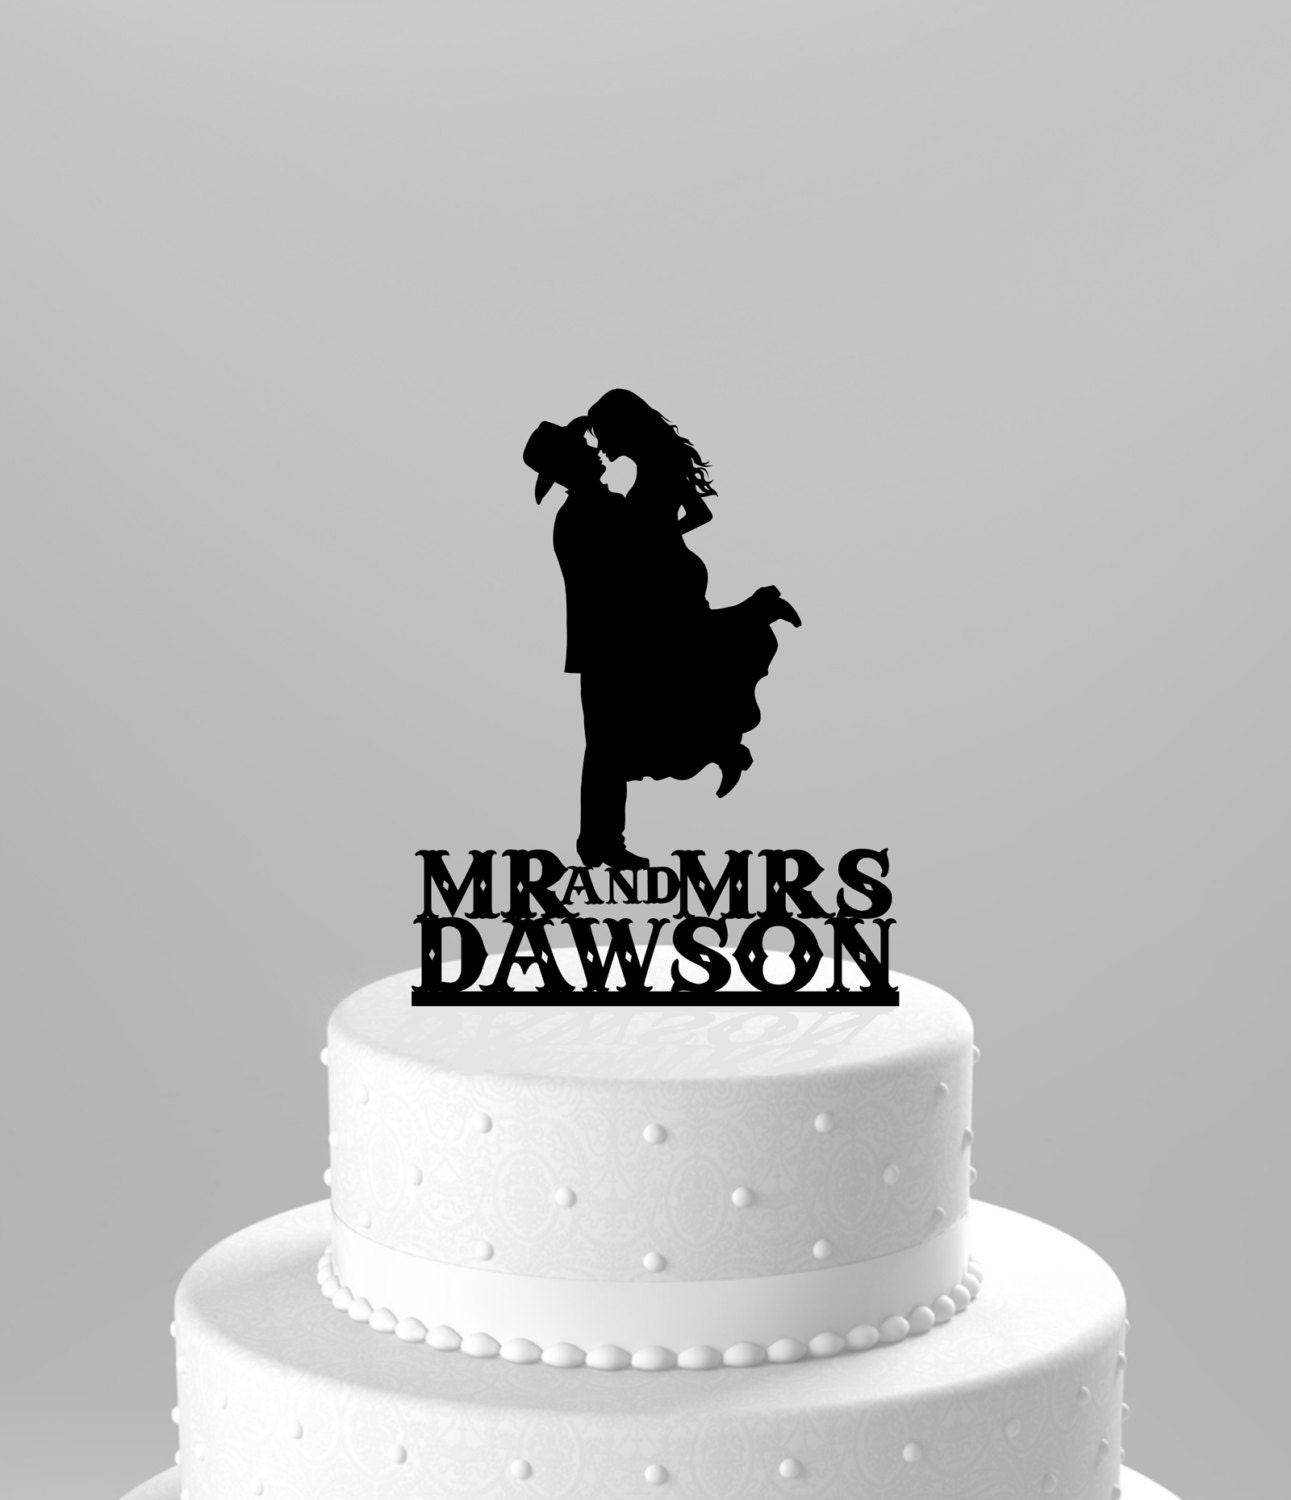 western cake toppers for wedding cakes country western wedding cake topper silhouette cowboy with hat 27015